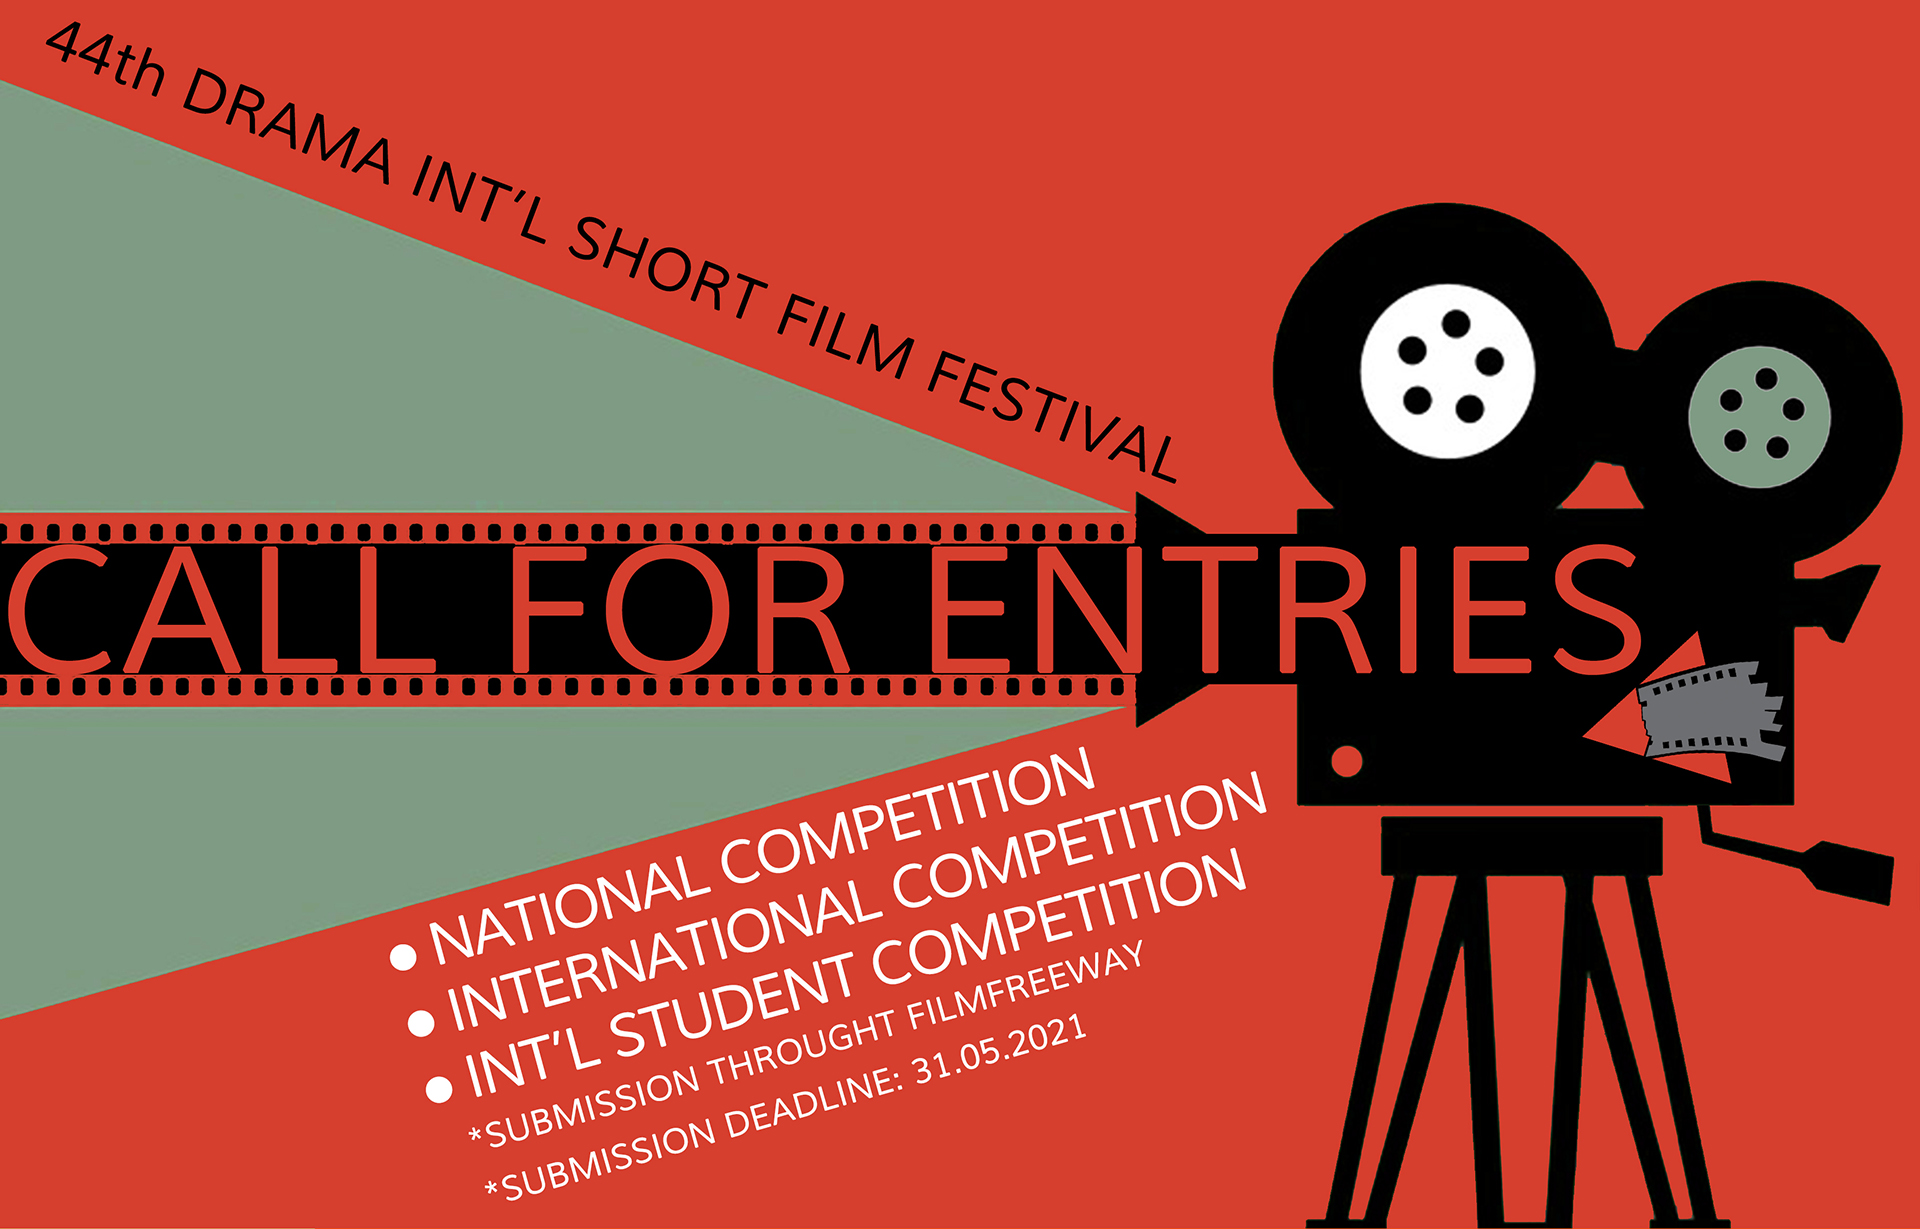 DISFF is awaiting your films